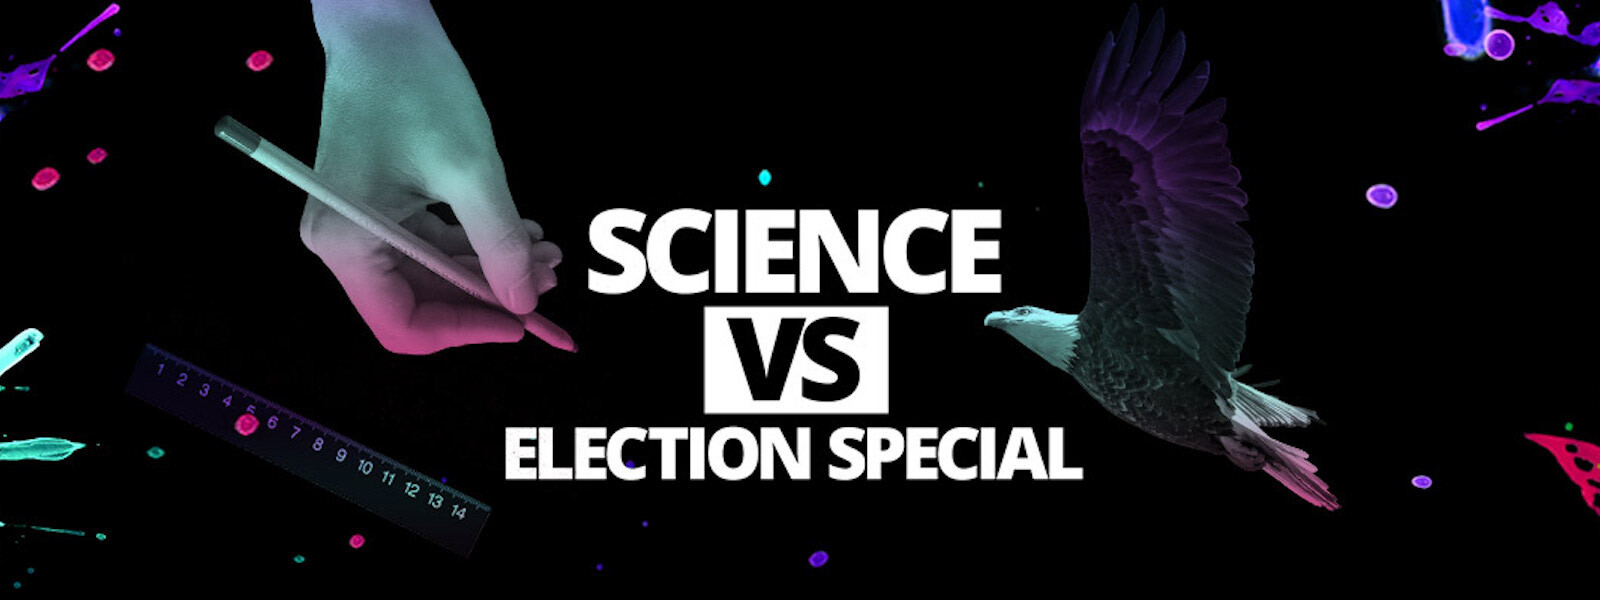 Background show artwork for Science Vs Election Special